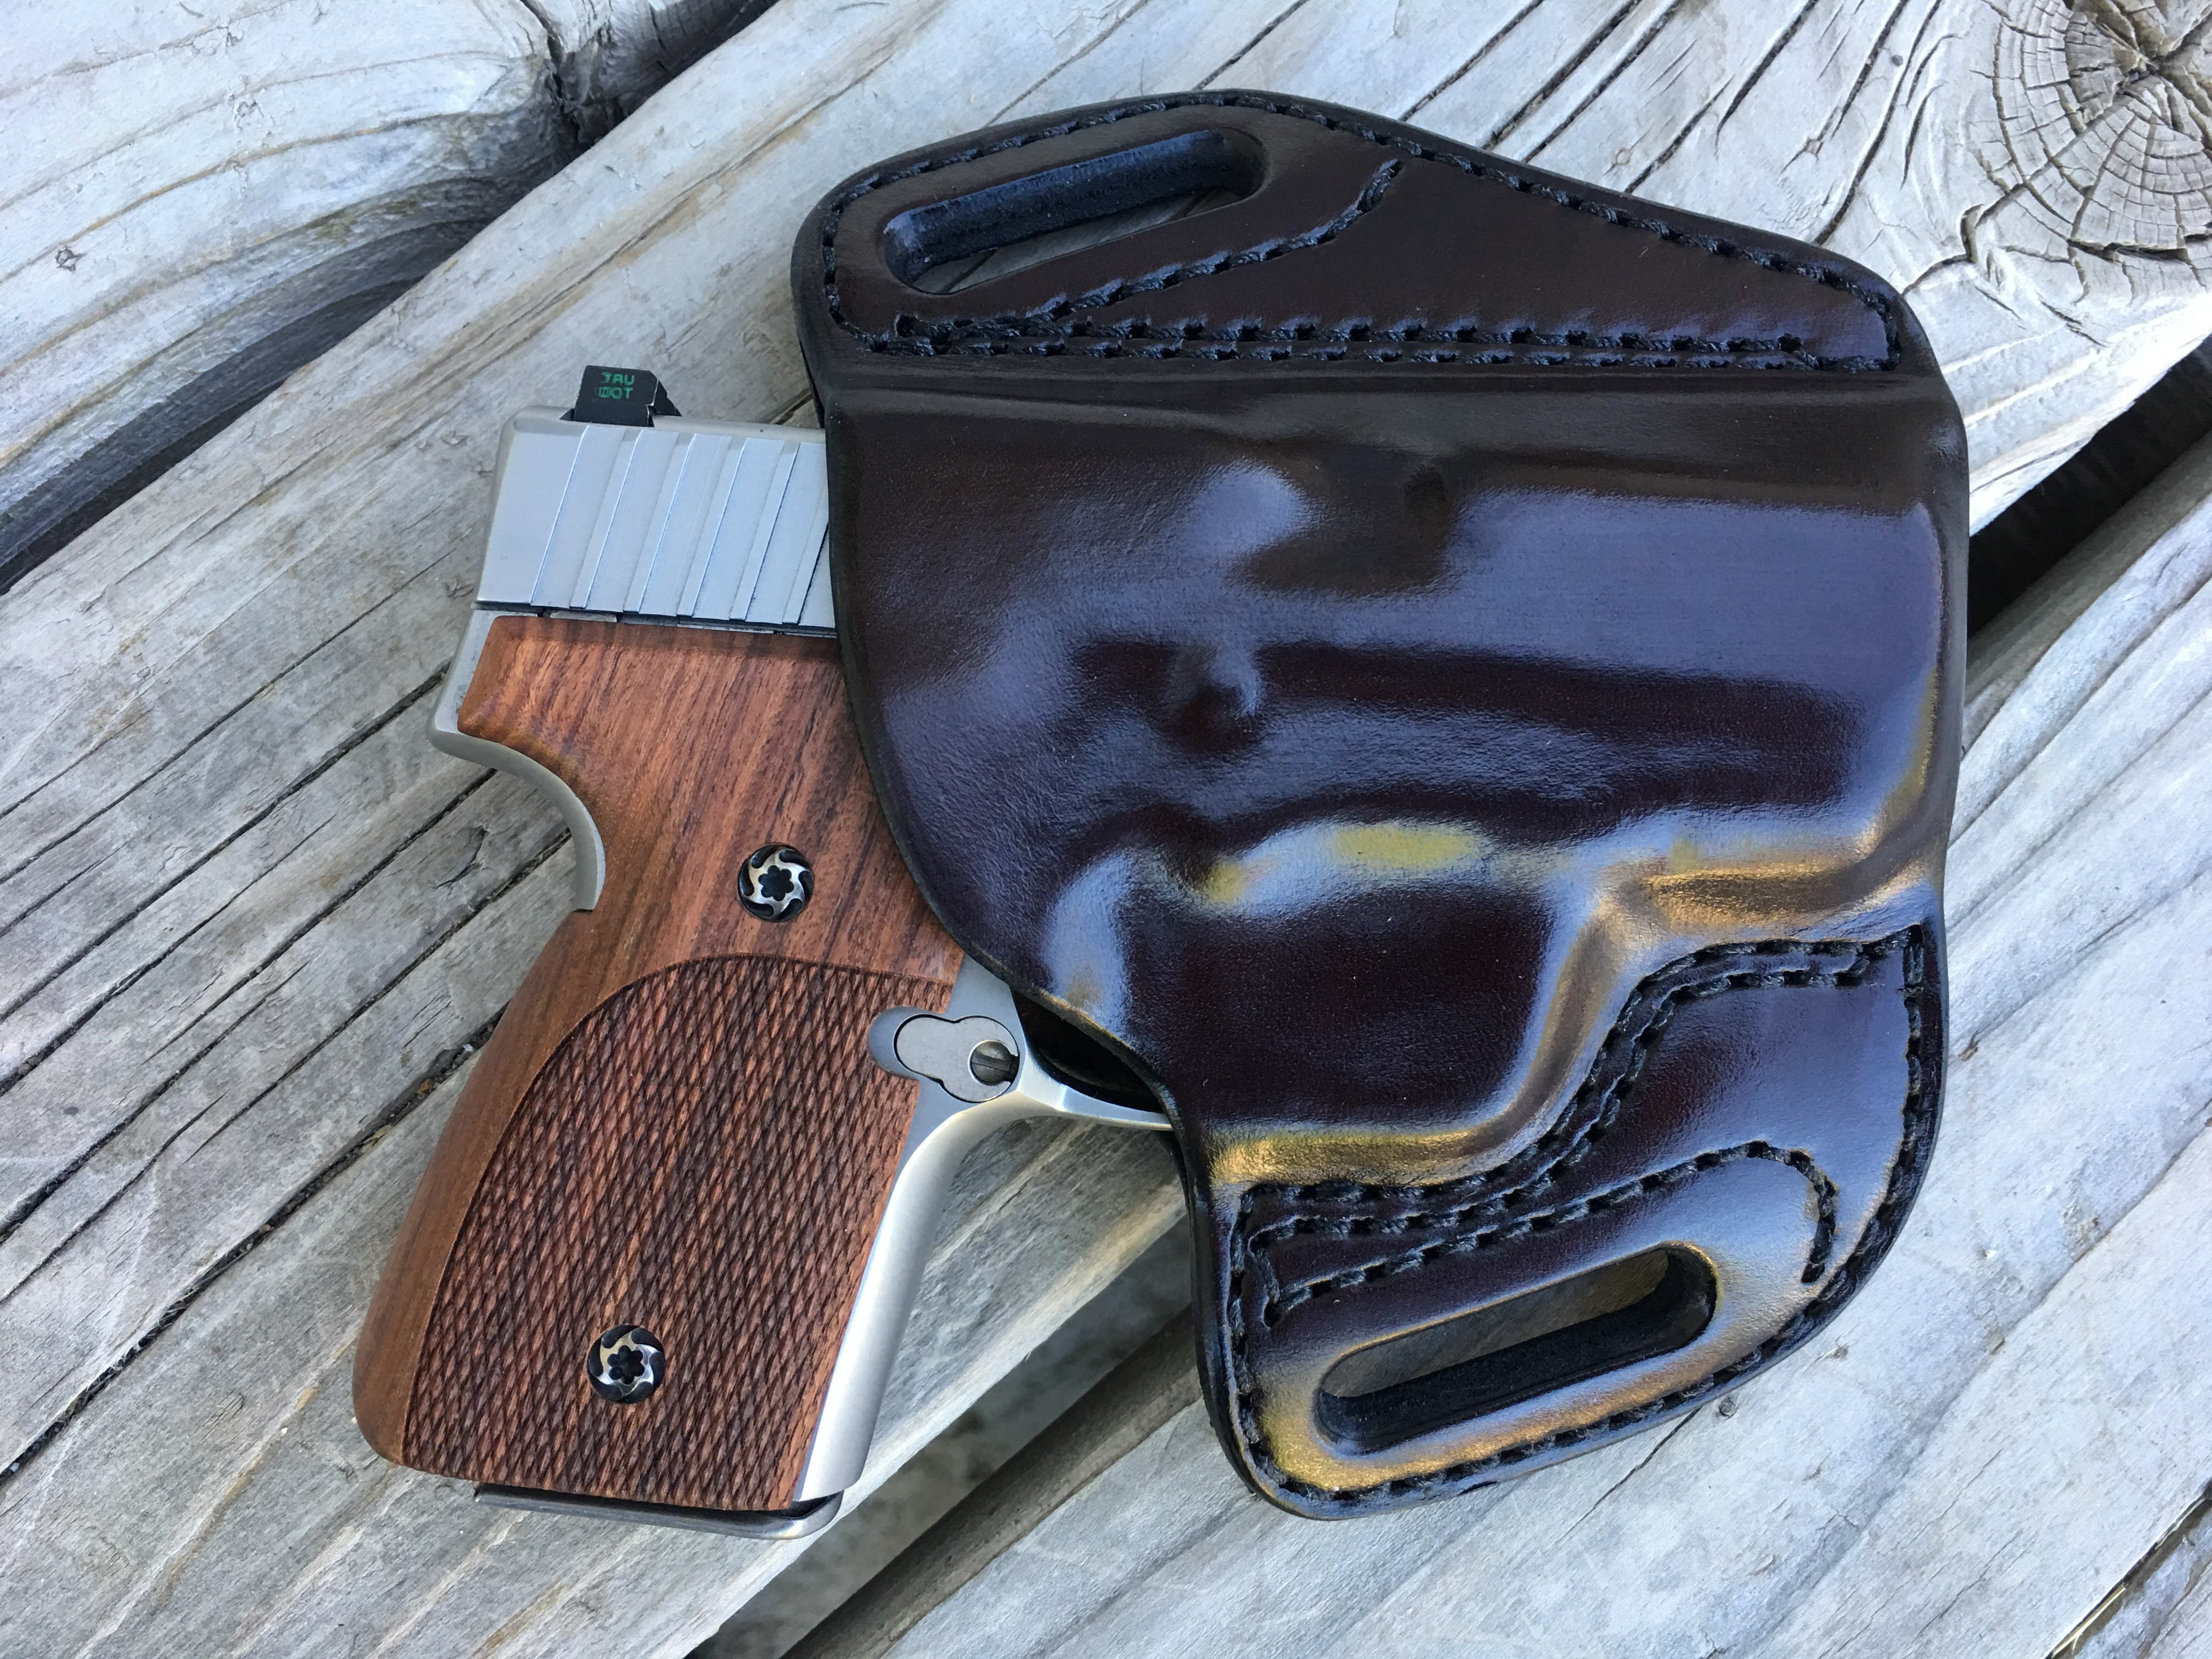 Do any of you carry concealed with an OWB holster?-6c4afe1c-2cc4-4991-a229-300e3cd28fd5.jpeg